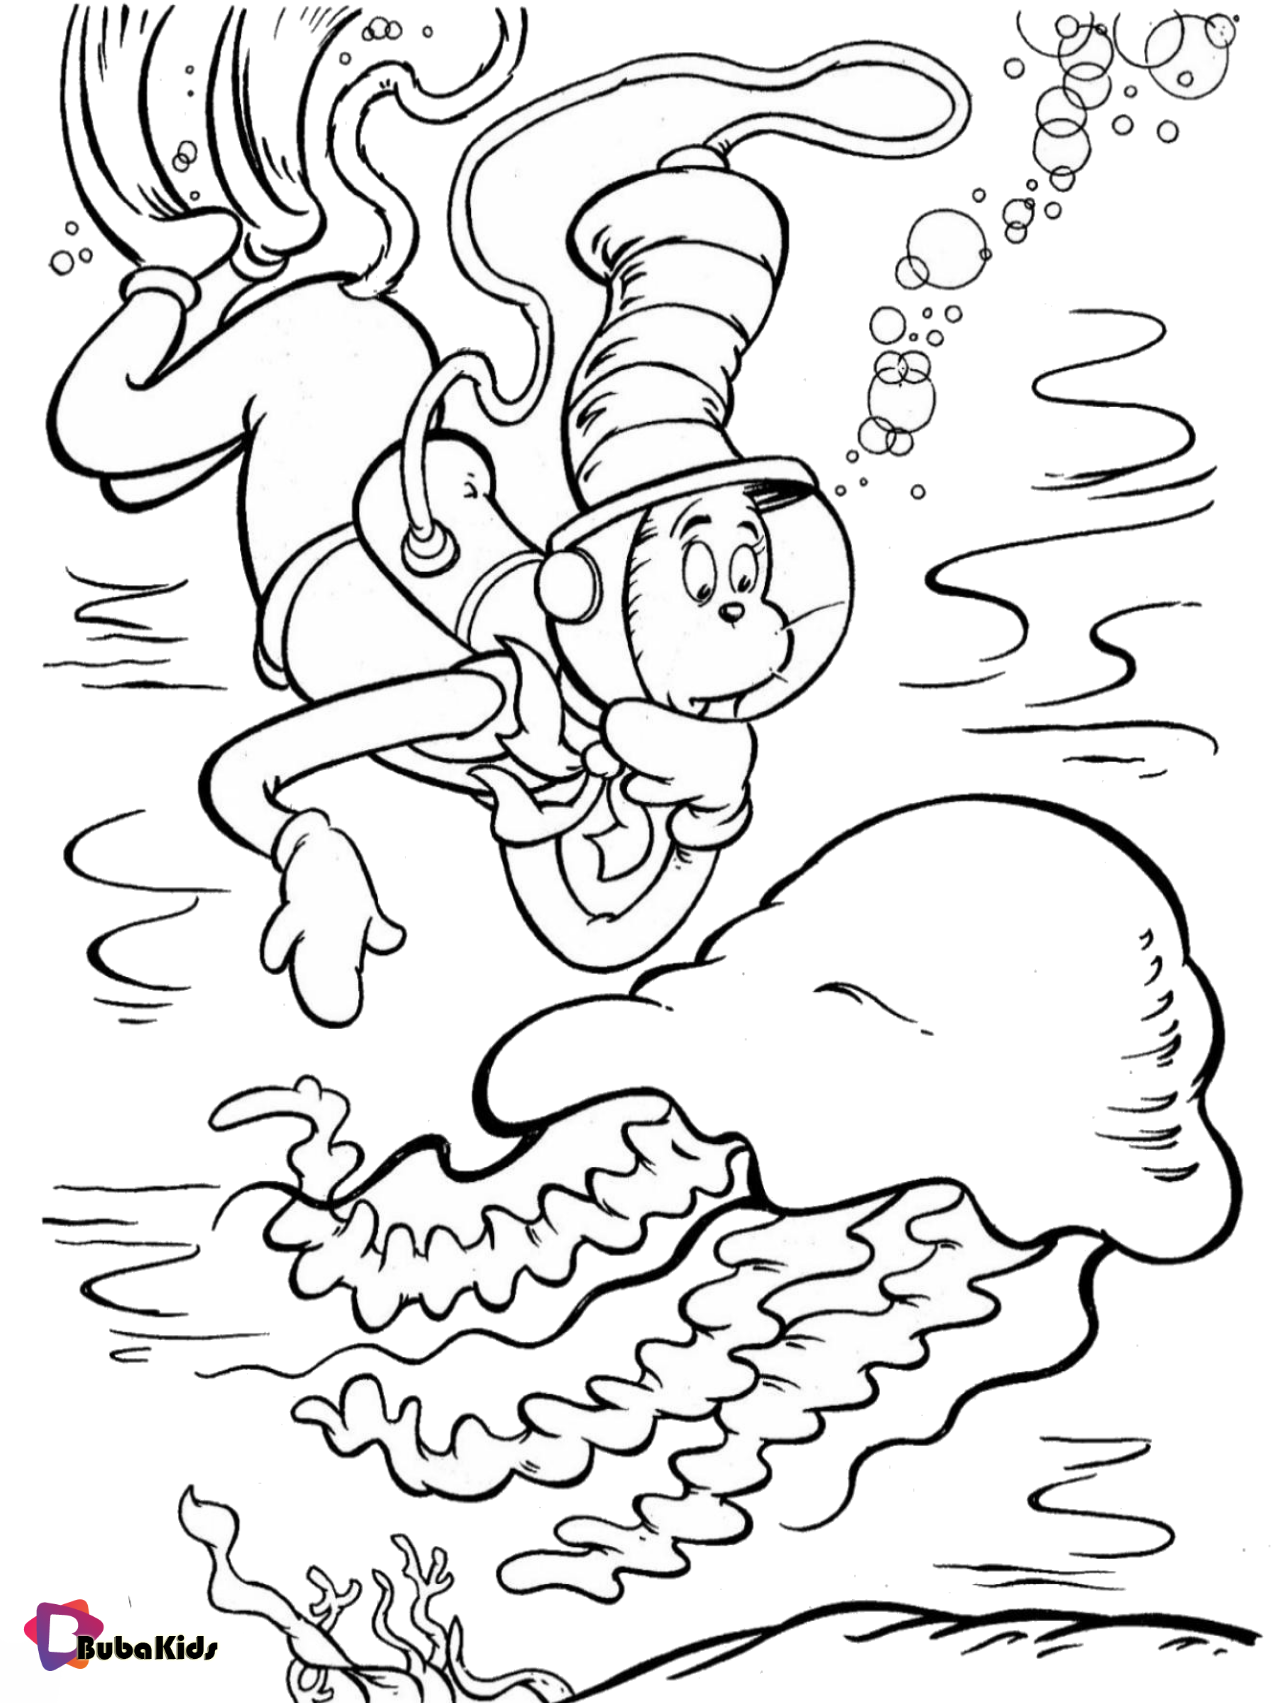 Dr seuss The Cat in The Hat jellyfish coloring page Wallpaper